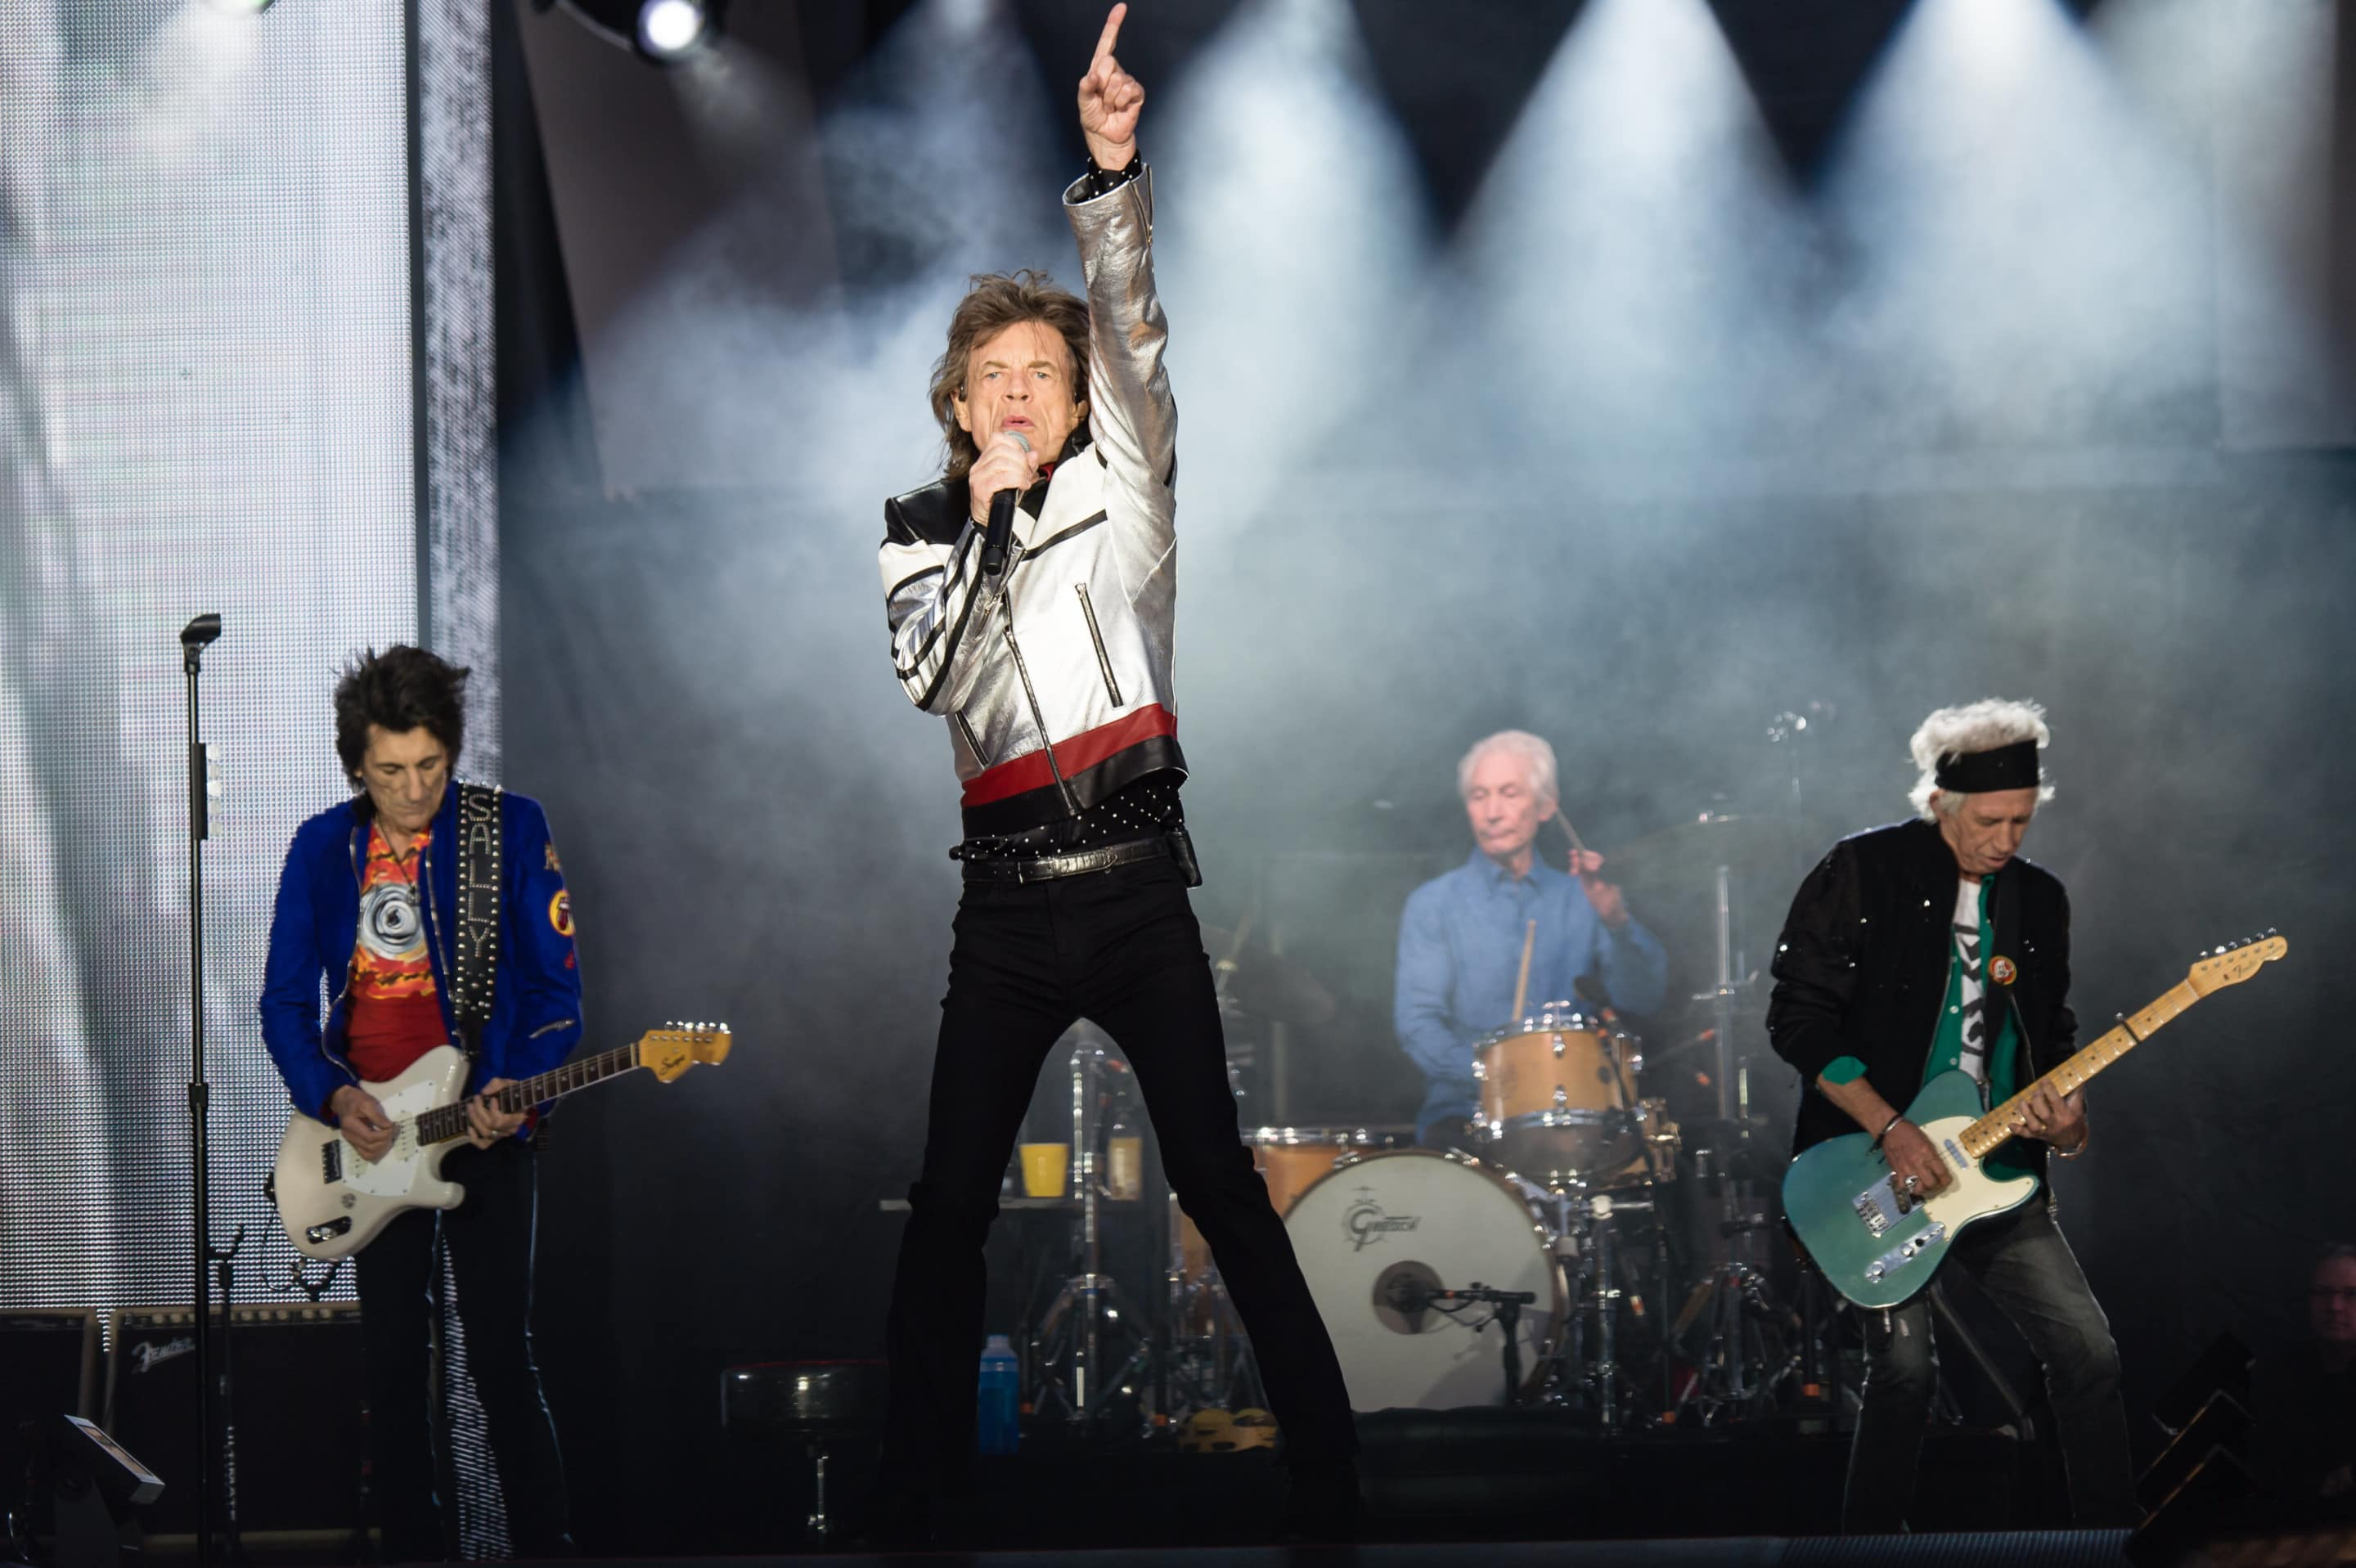 mick-jagger-rolling-stones-concert-freelance-photographer-richard-isaac-5760